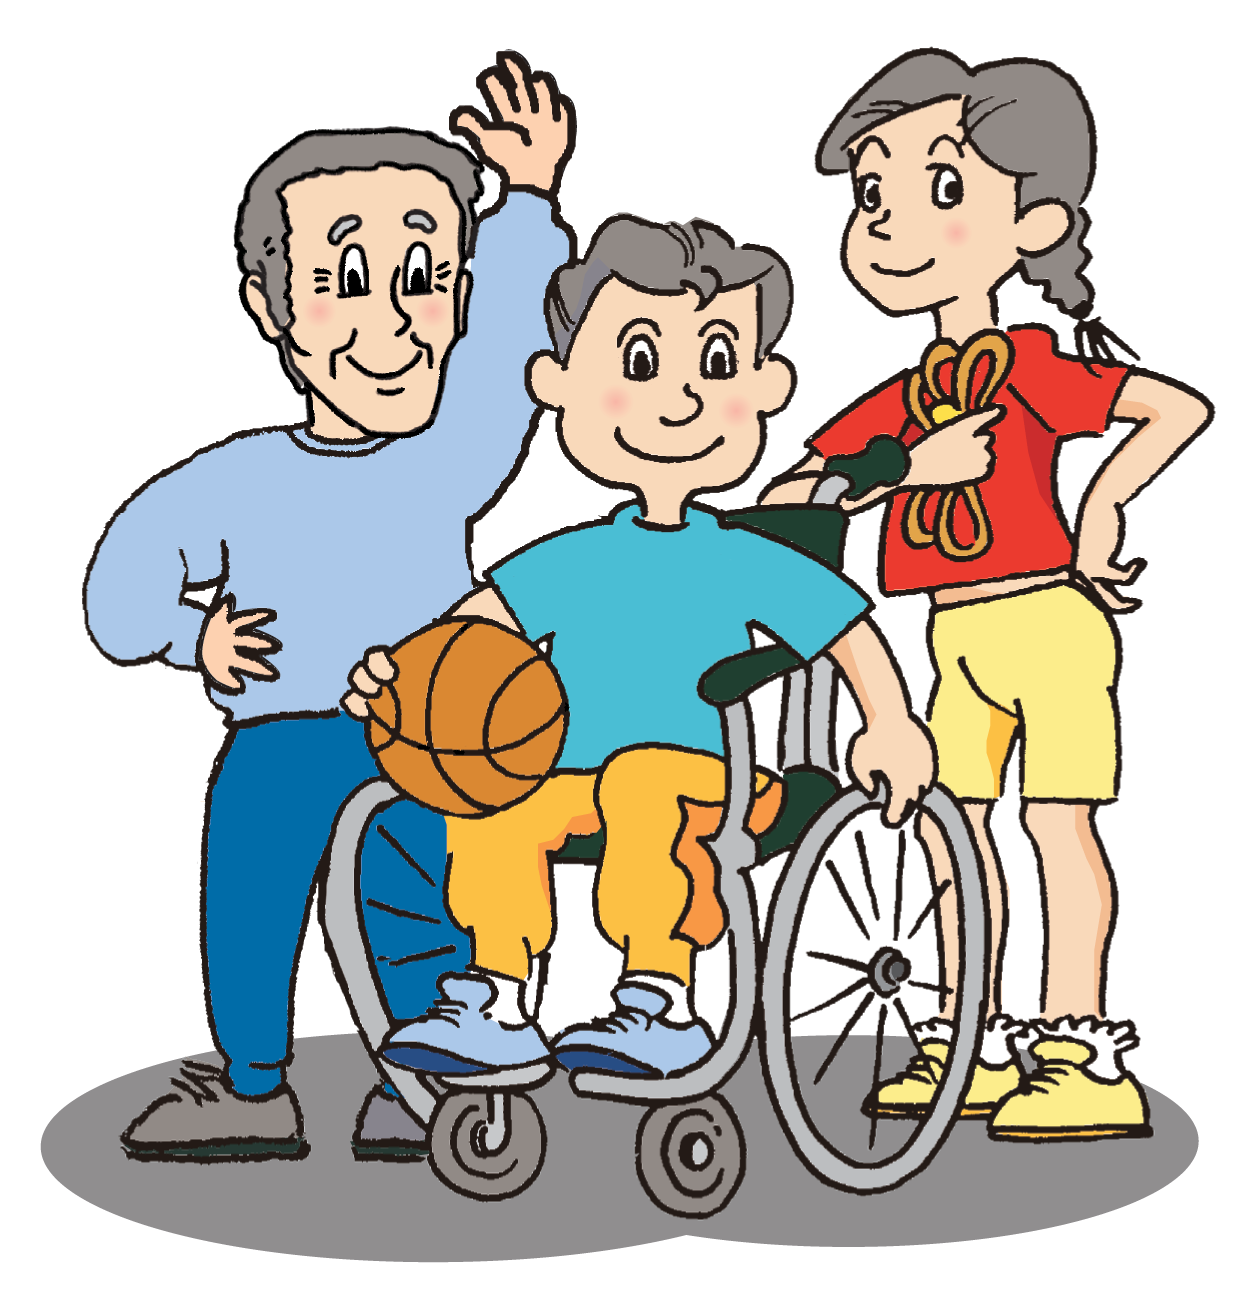 Exercise clipart health fitness. Leisure and cultural services